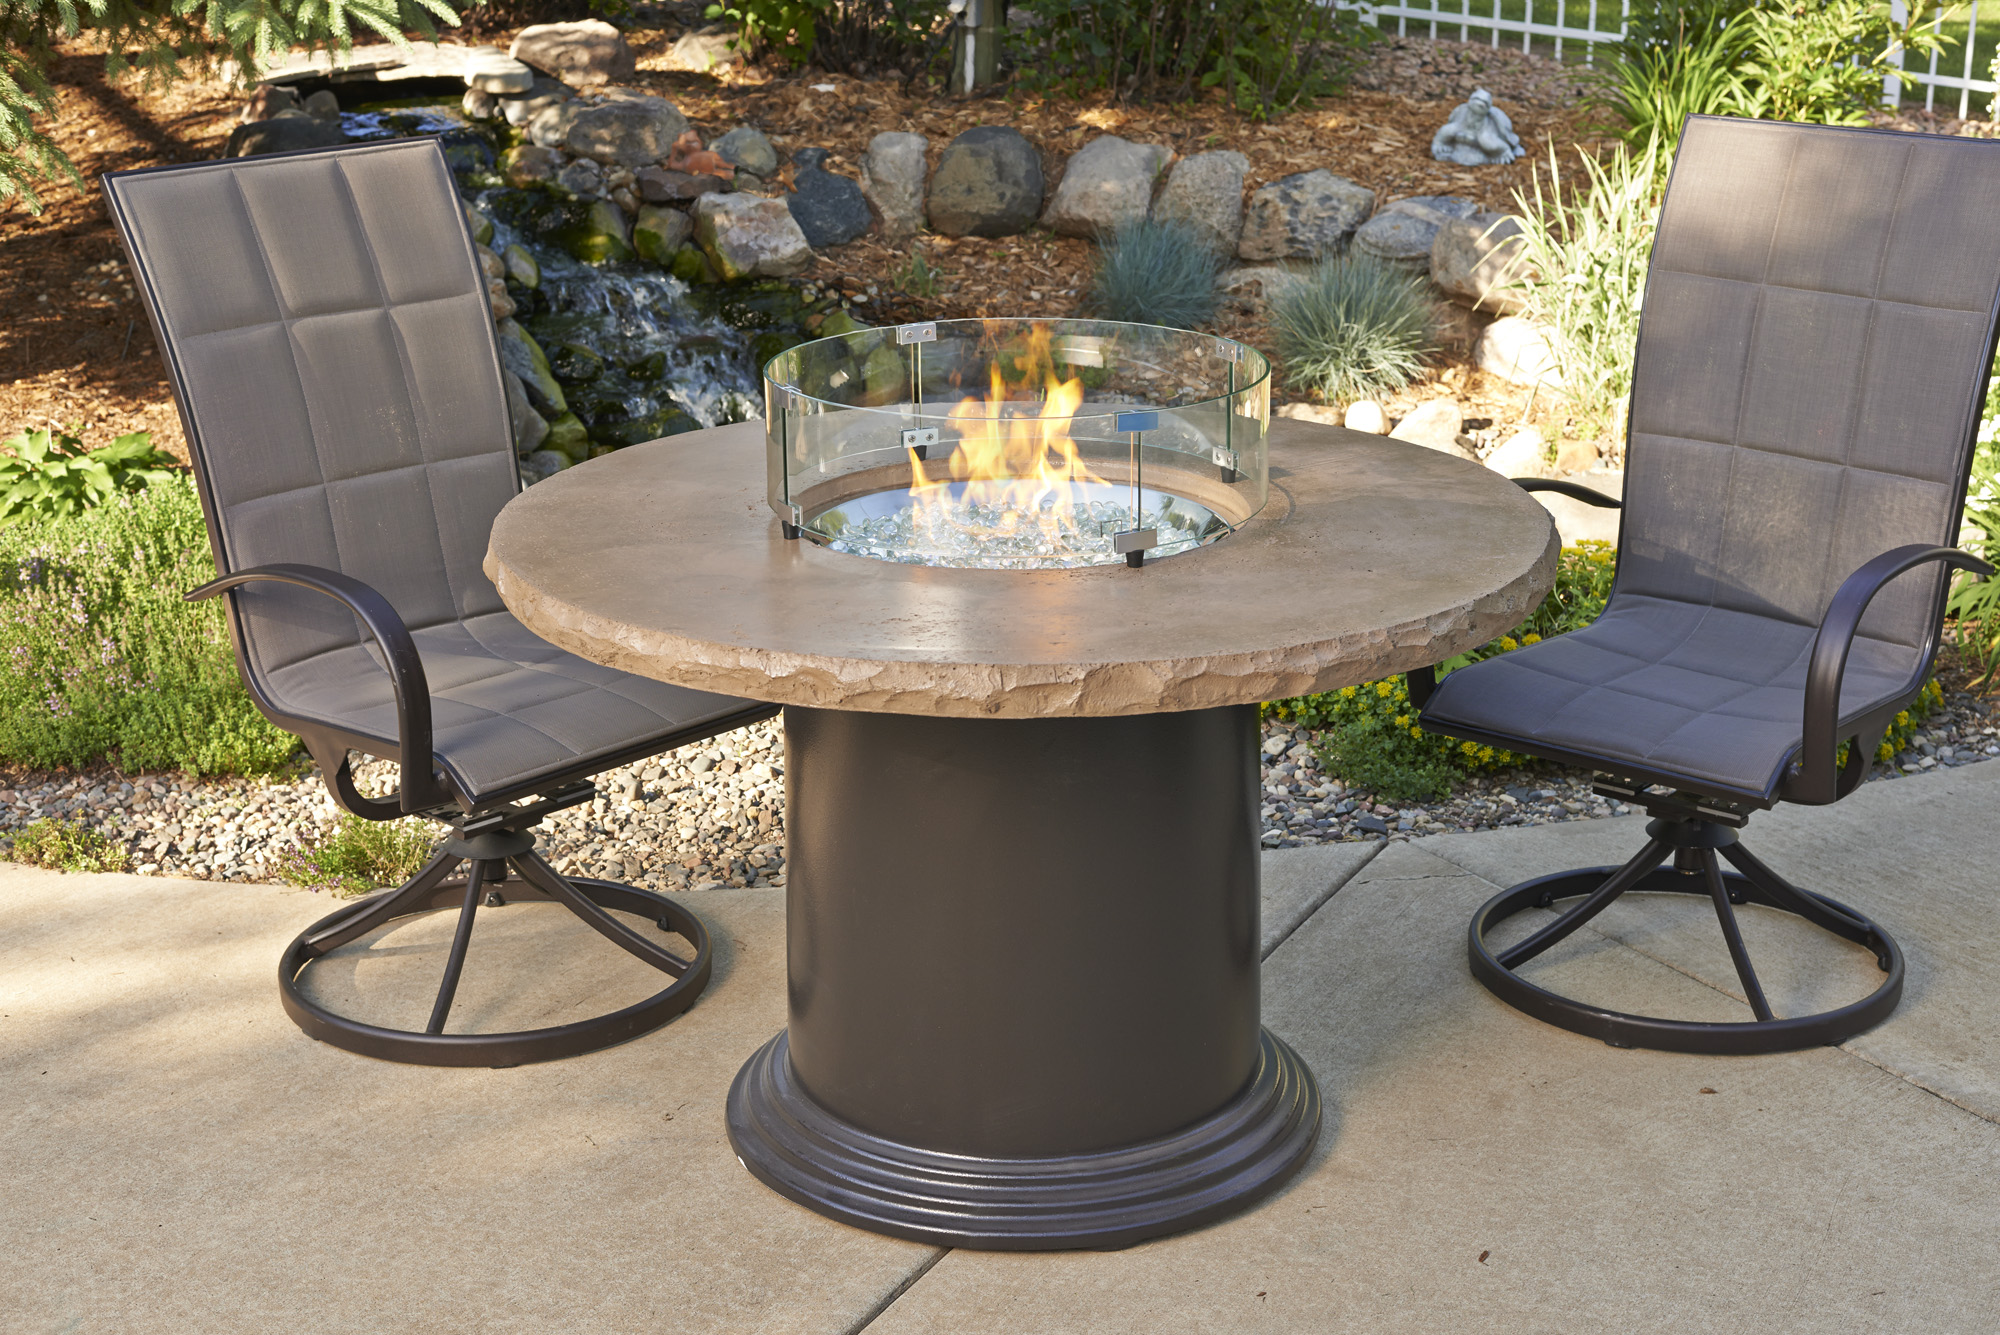 Marbelized Noche, Colonial, dining table, promotion, sale, fire pit, firepit, fire table,  firetable, Outdoor Greatroom Company